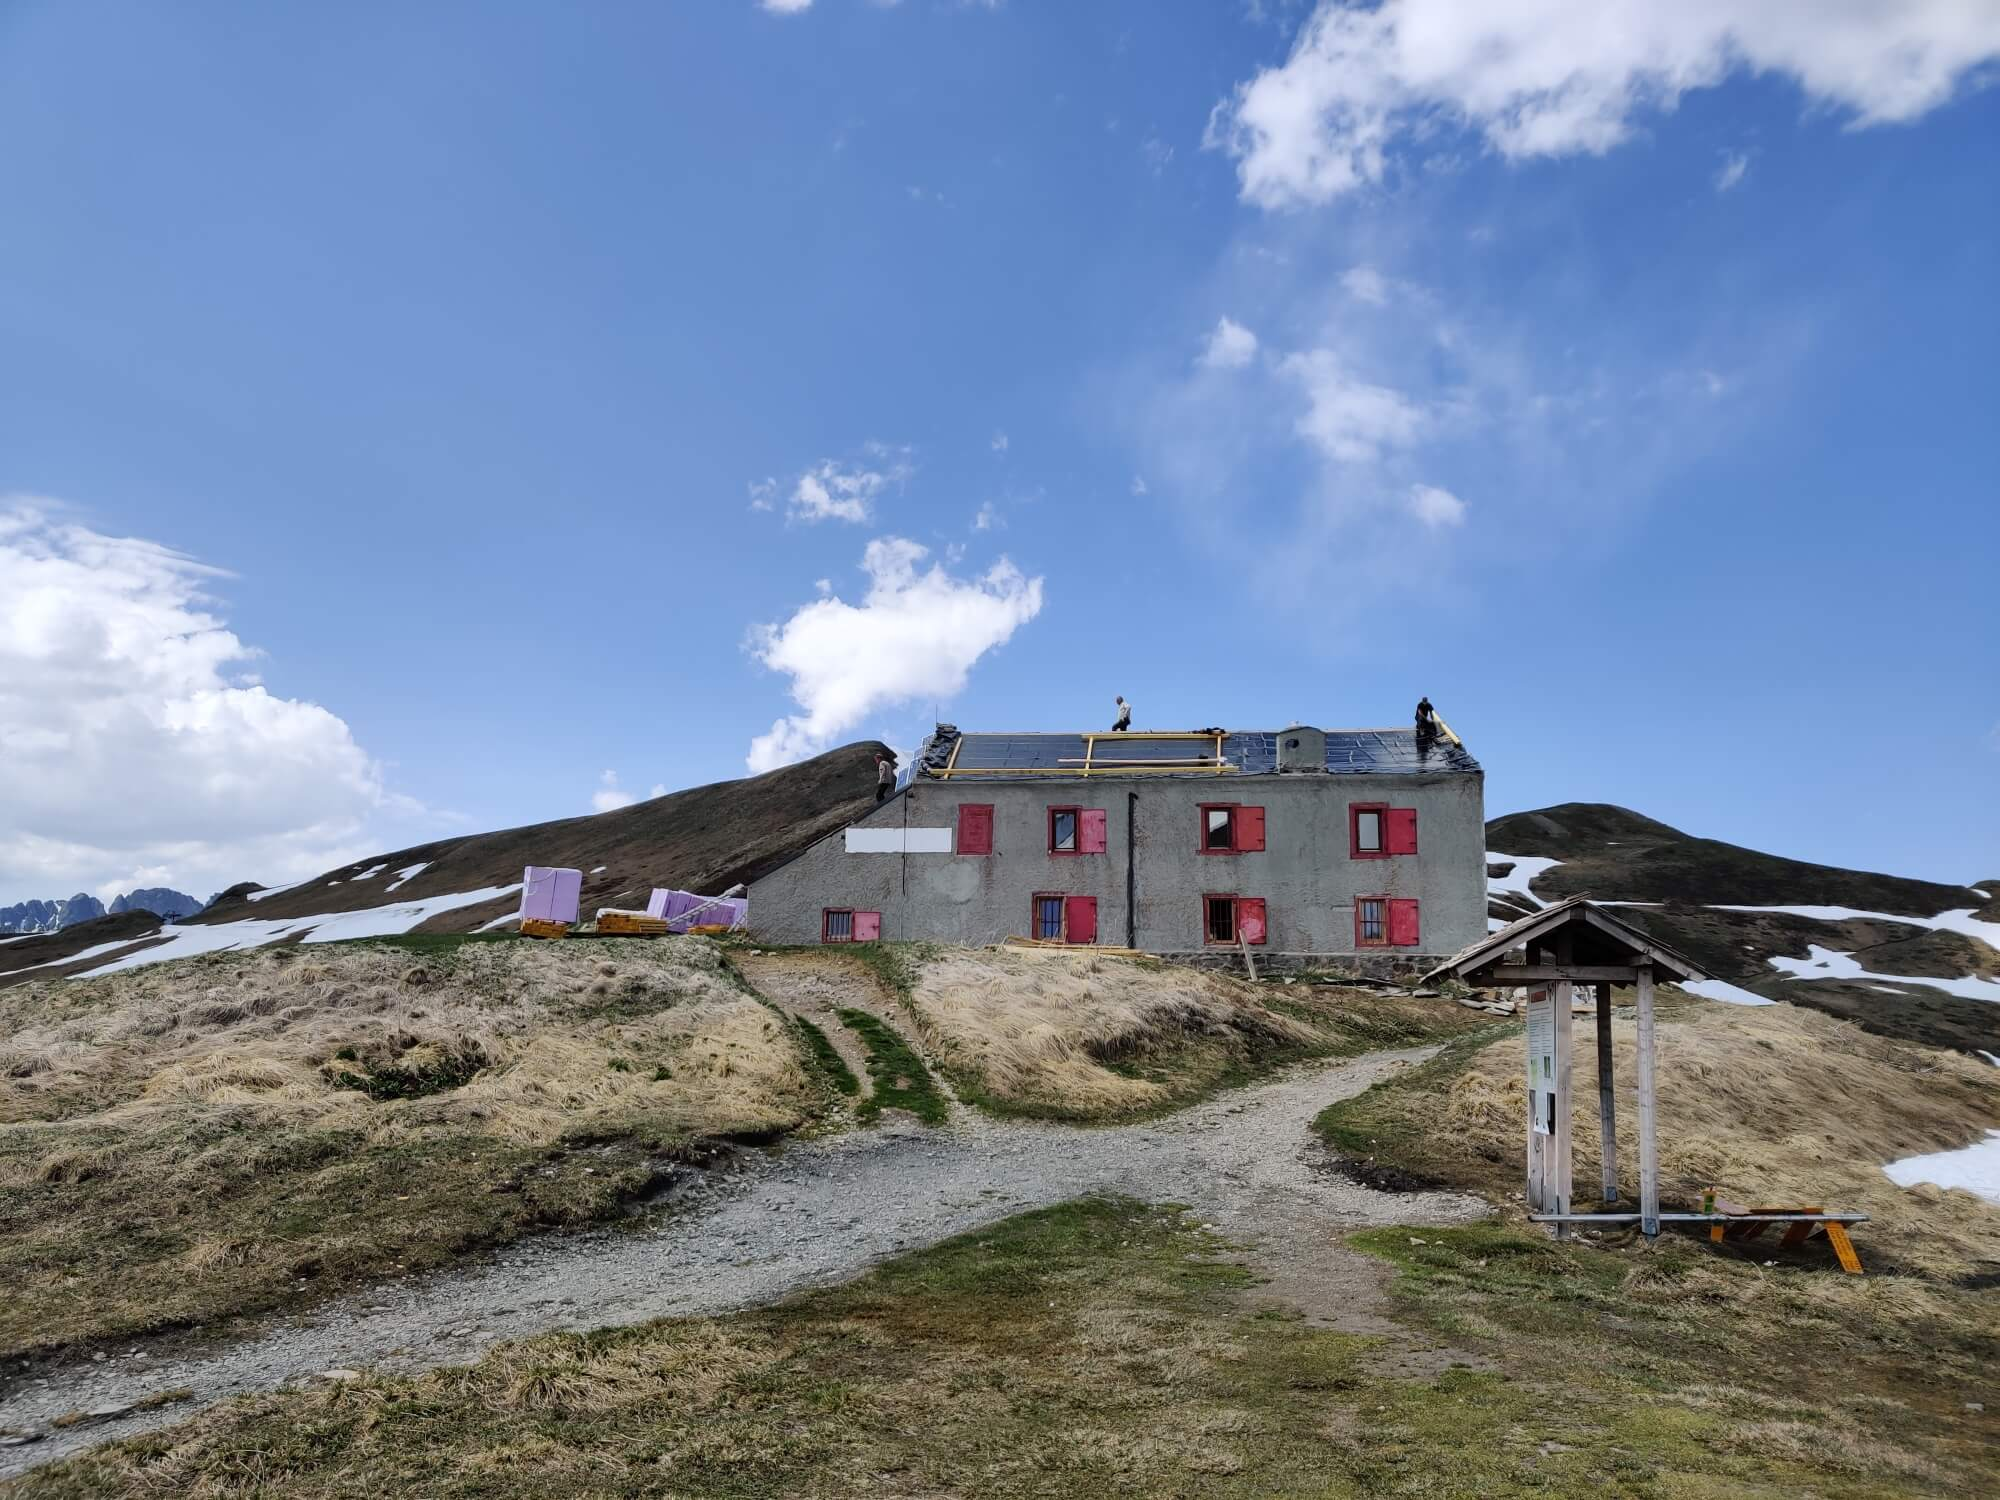 Refuge Col de Blame:  Hard at work with repairs and renovations before the hungry hikers arrive for the 2019 season.